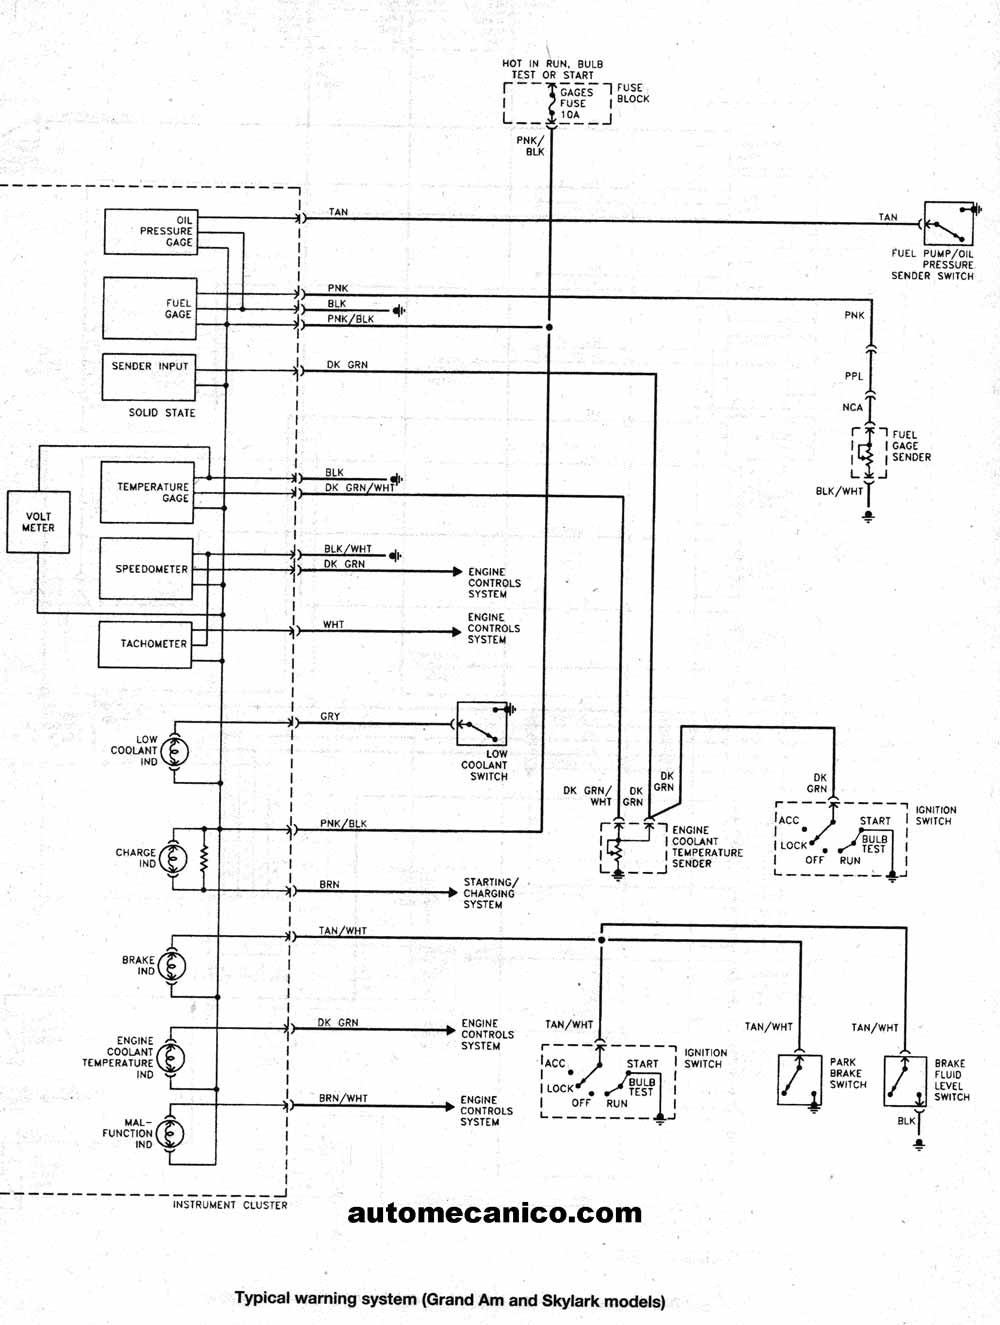 2012 Nissan Quest Fuse Diagram House Wiring Symbols 2011 Wire Data Schema Images Gallery